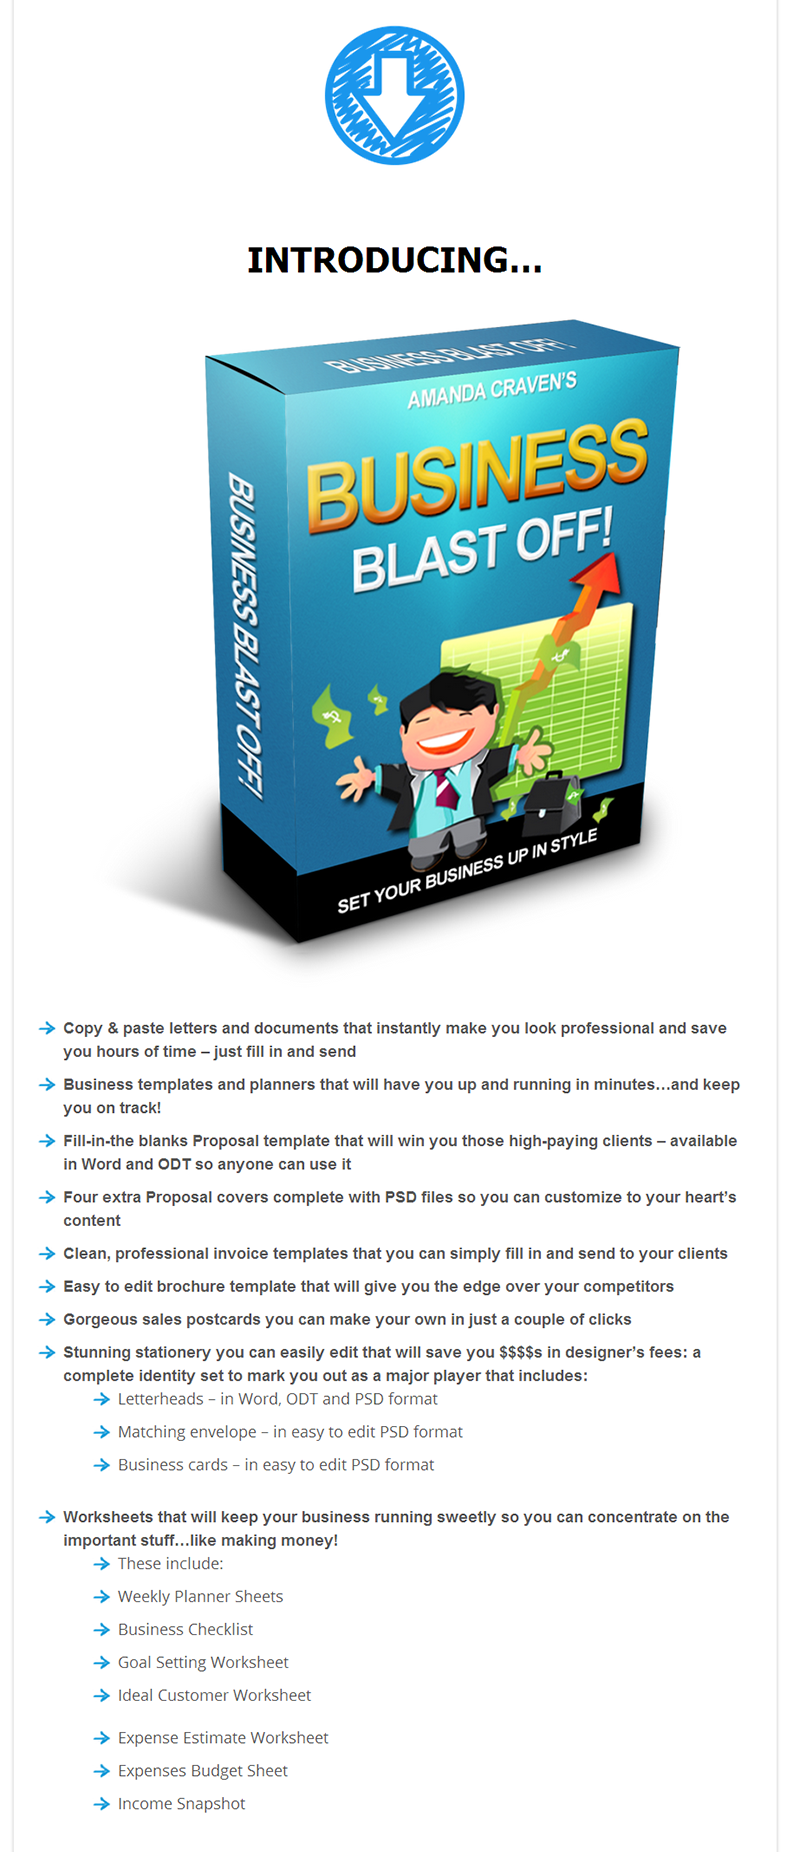 salesletter6 [GET] OFFLINERS: Business Blast Off Is Here! wso offliners affiliate marketing